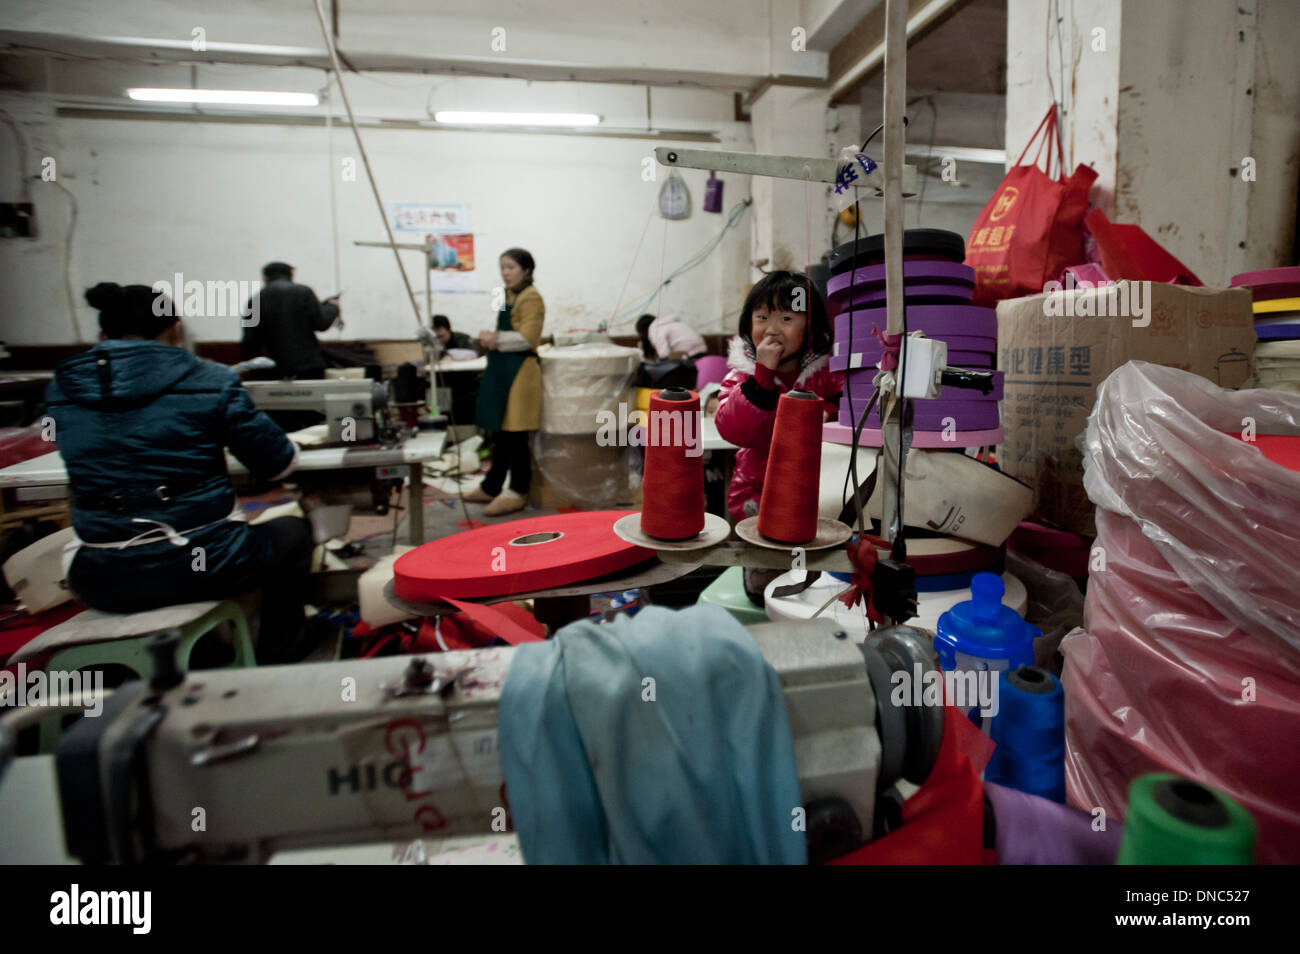 Chongqing, China - 31 December 2010: a child plays hiding behind textile materials while women work in a textile factory. The ch - Stock Image